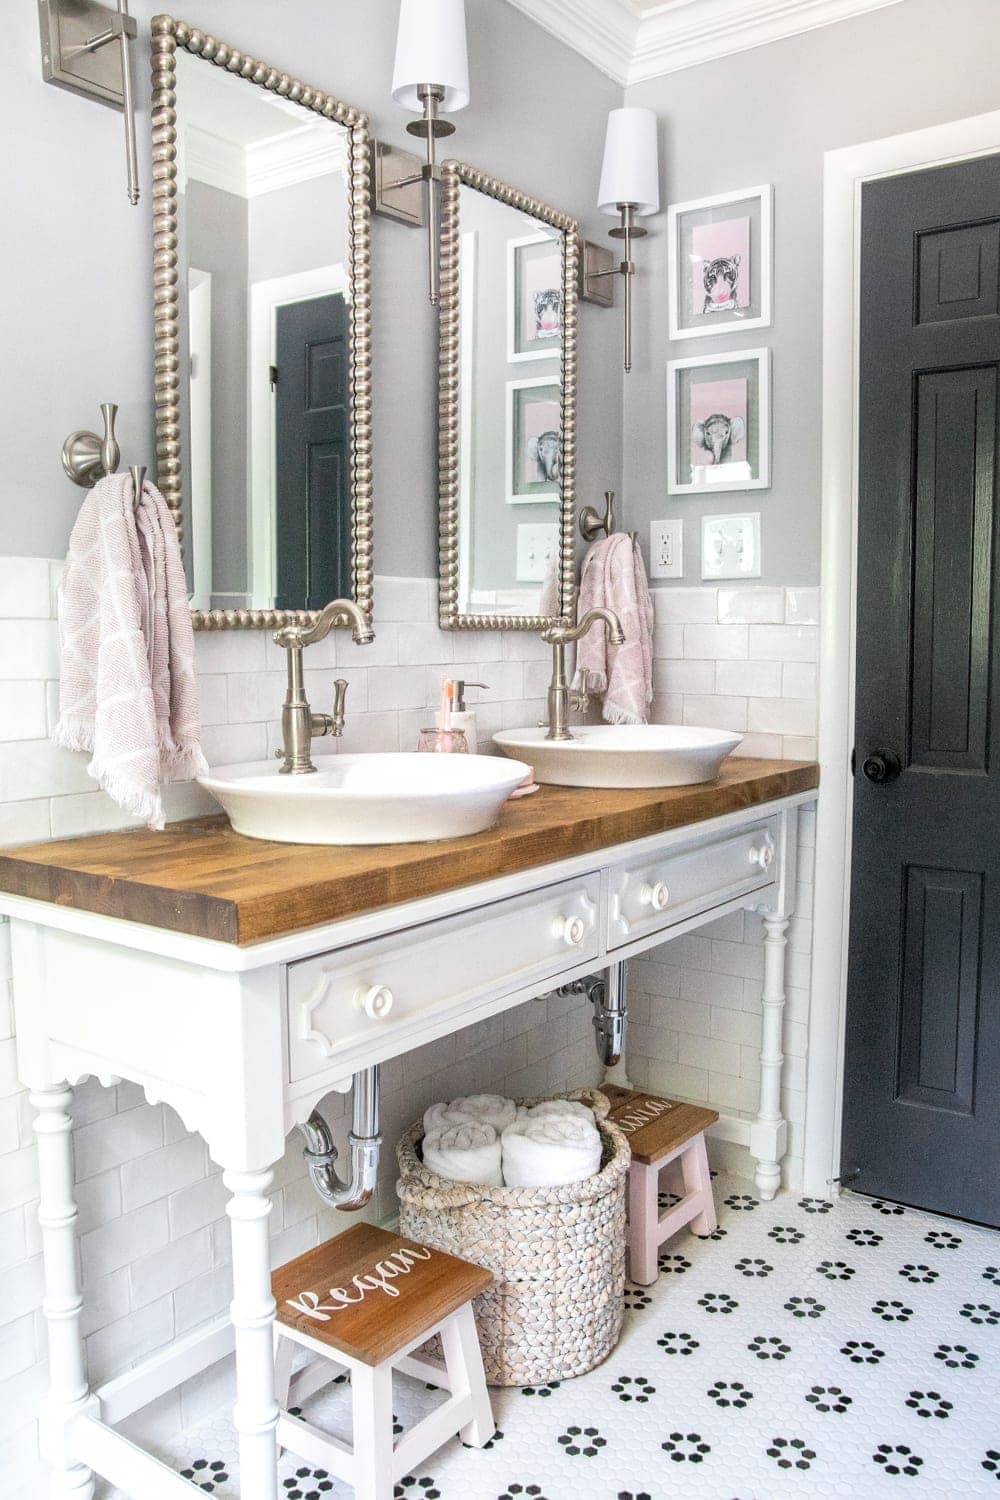 Girls Bathroom Decor Details and Sources - Bless'er House